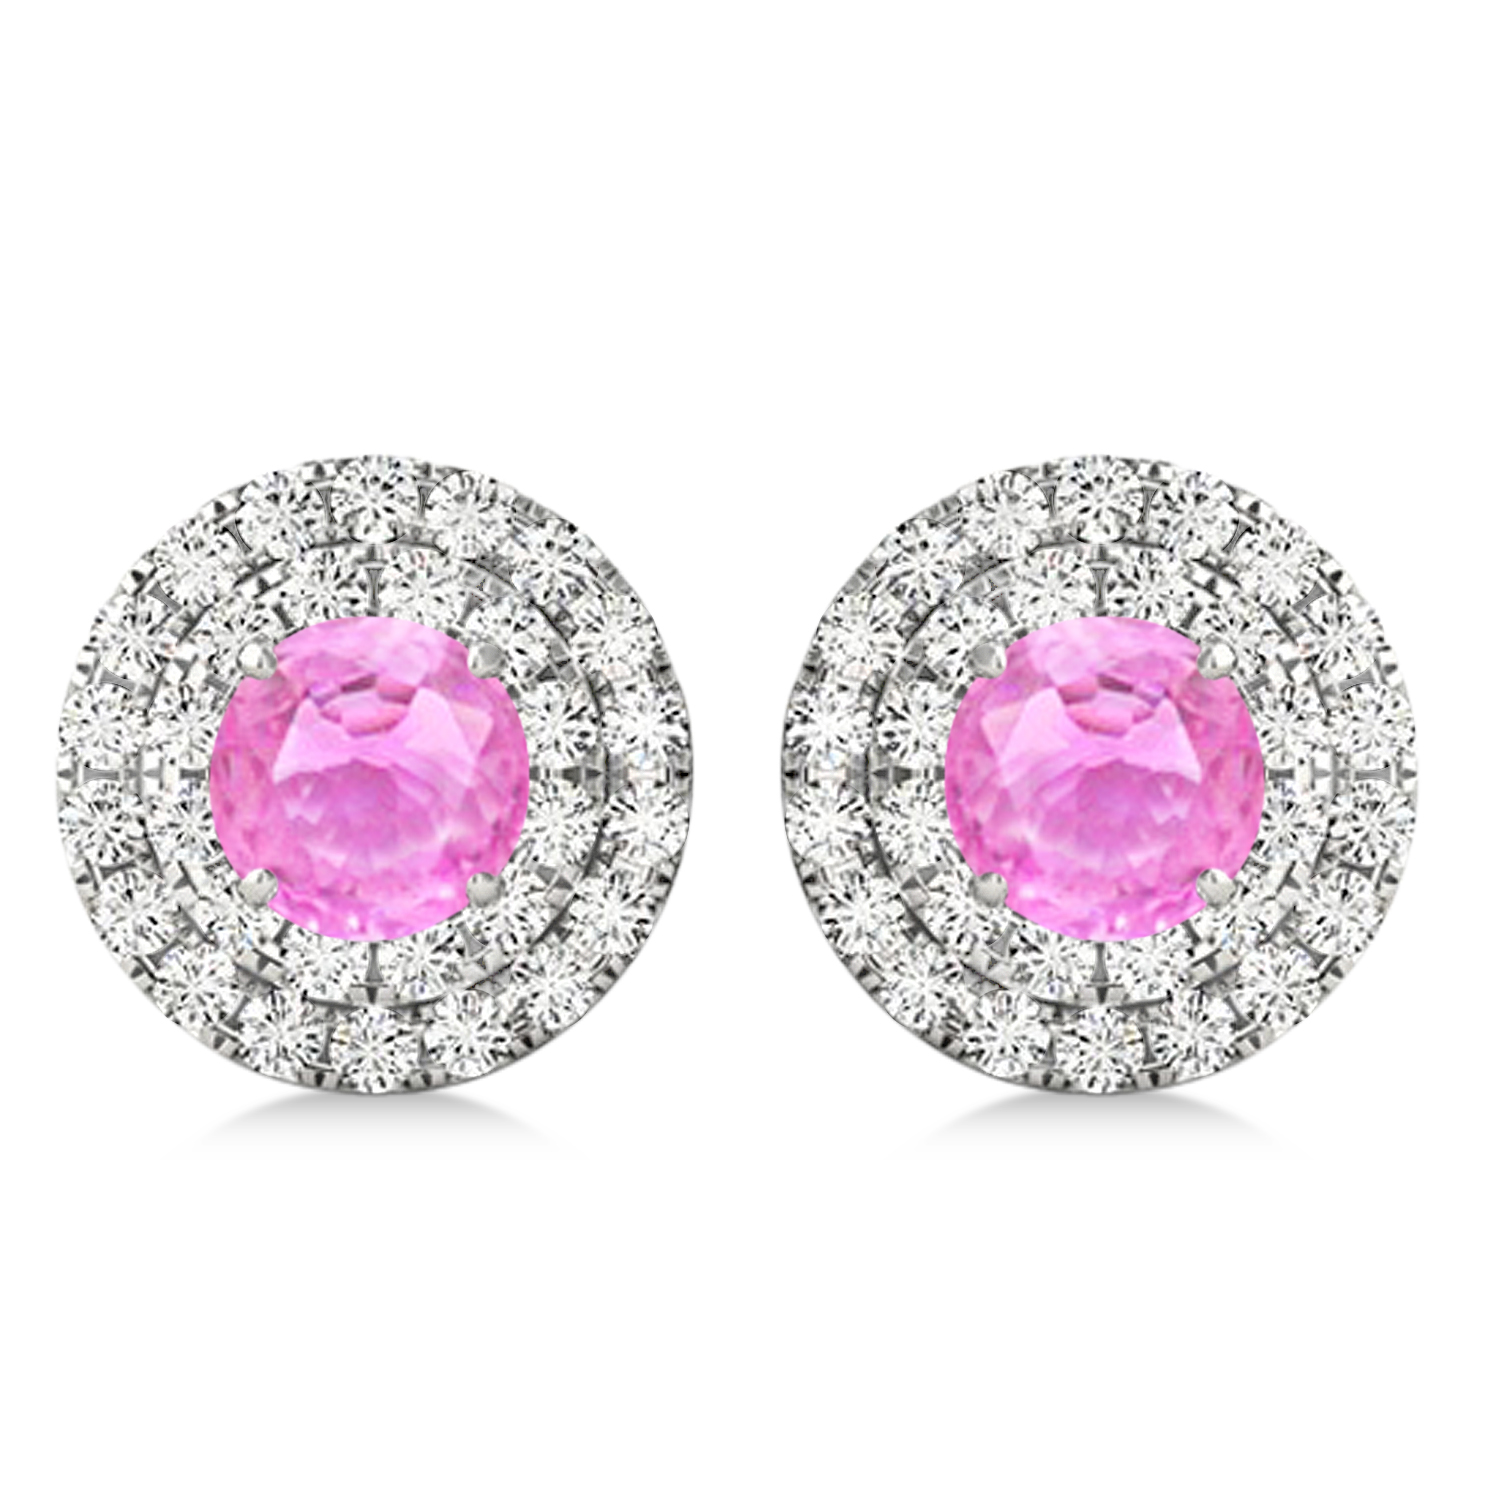 Round Double Halo Diamond & Pink Sapphire Earrings 14k White Gold 1.65ct